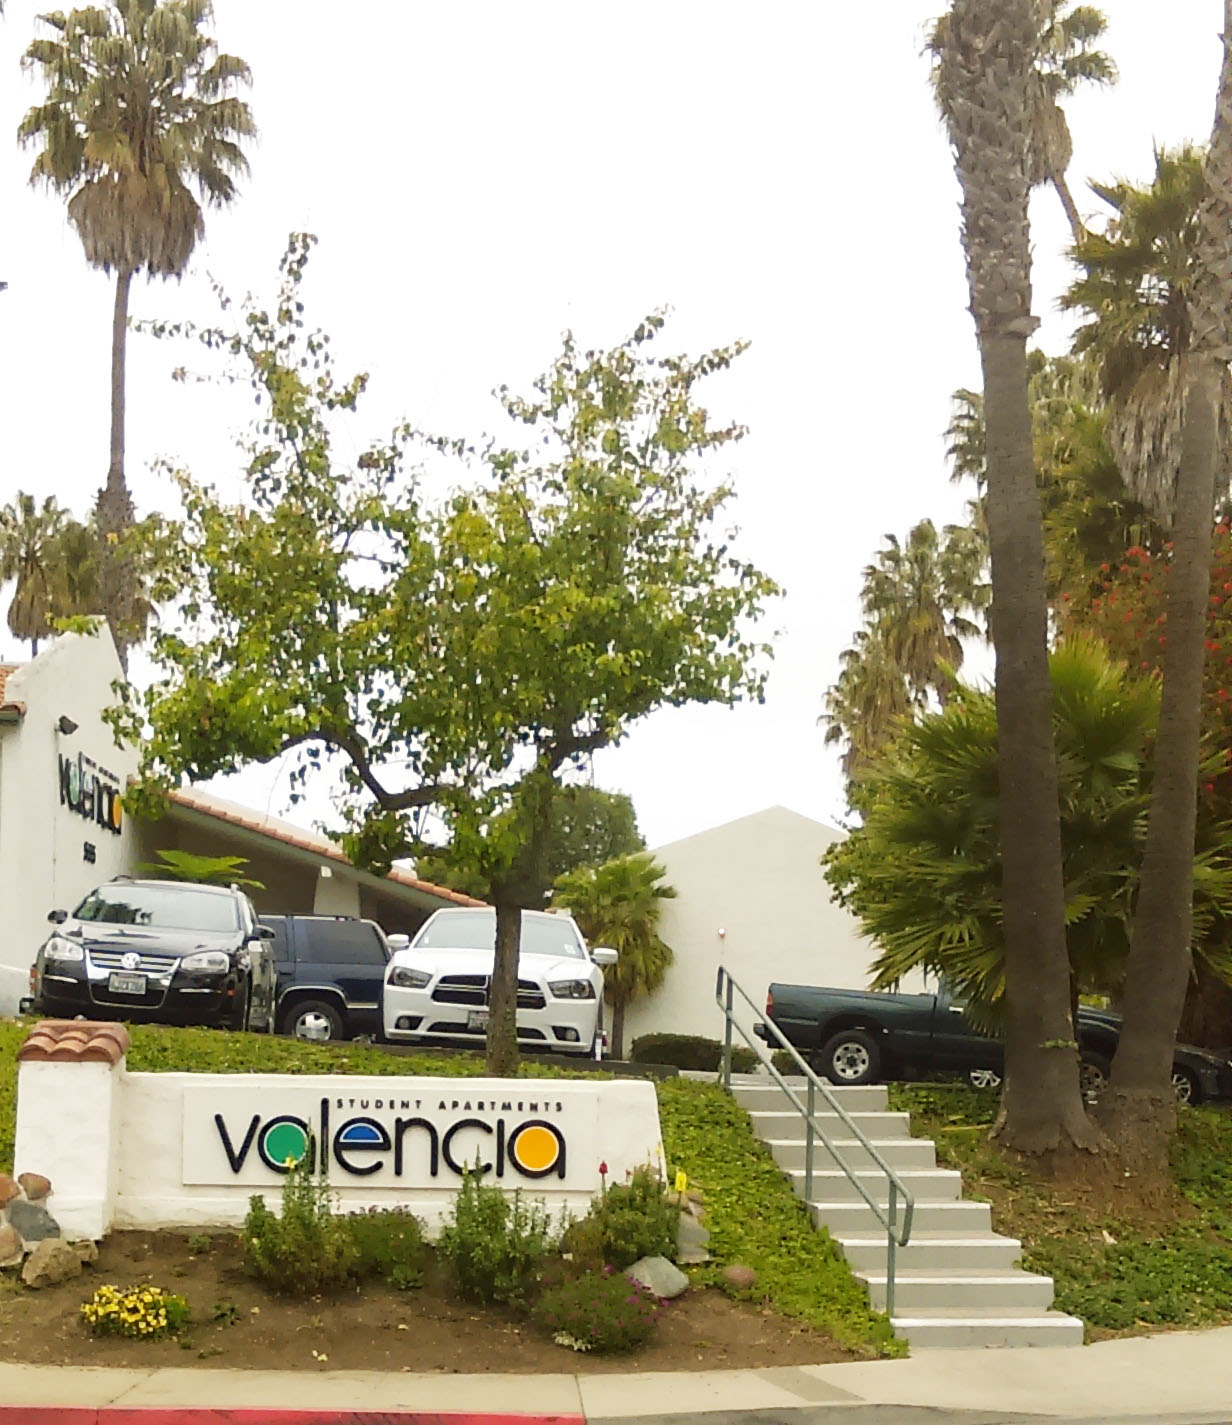 Large Apartment Complexes Such As Valencia Are Already Inspected By The  Fire Department.